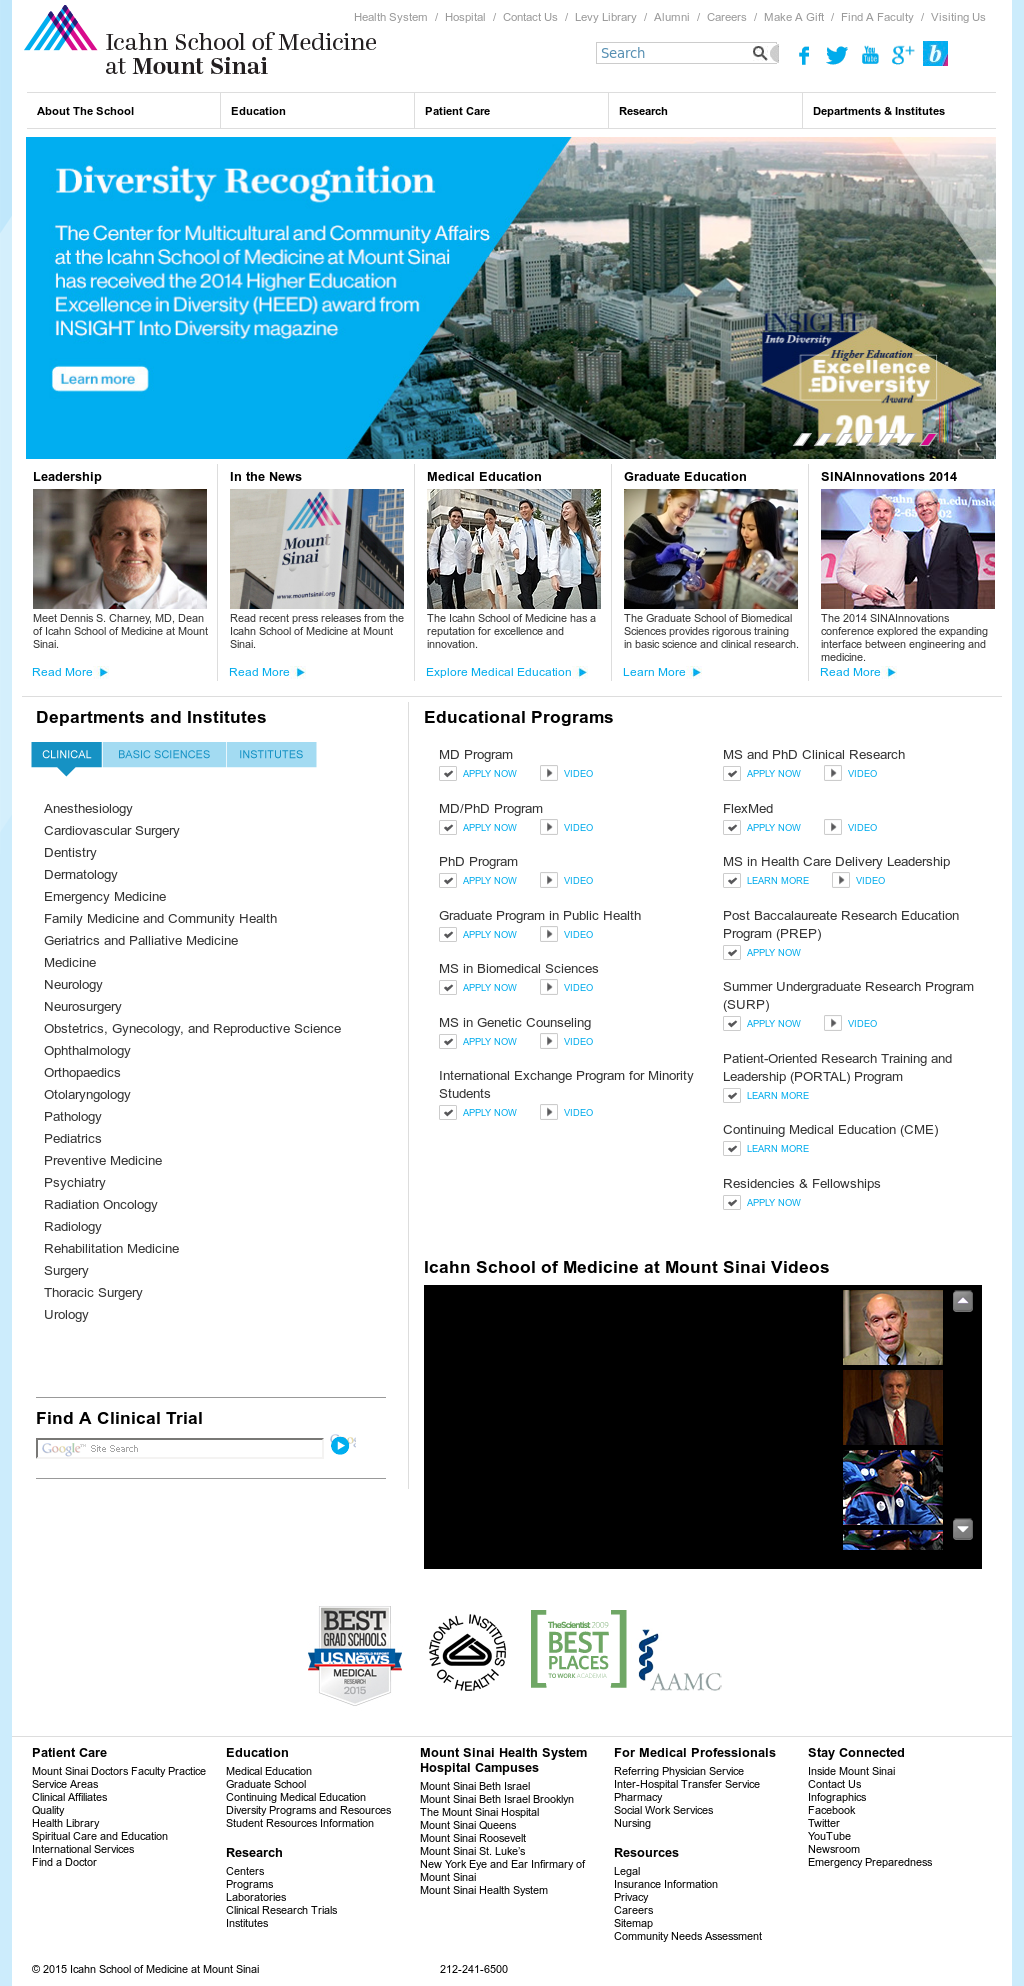 Mount Sinai Competitors, Revenue and Employees - Owler